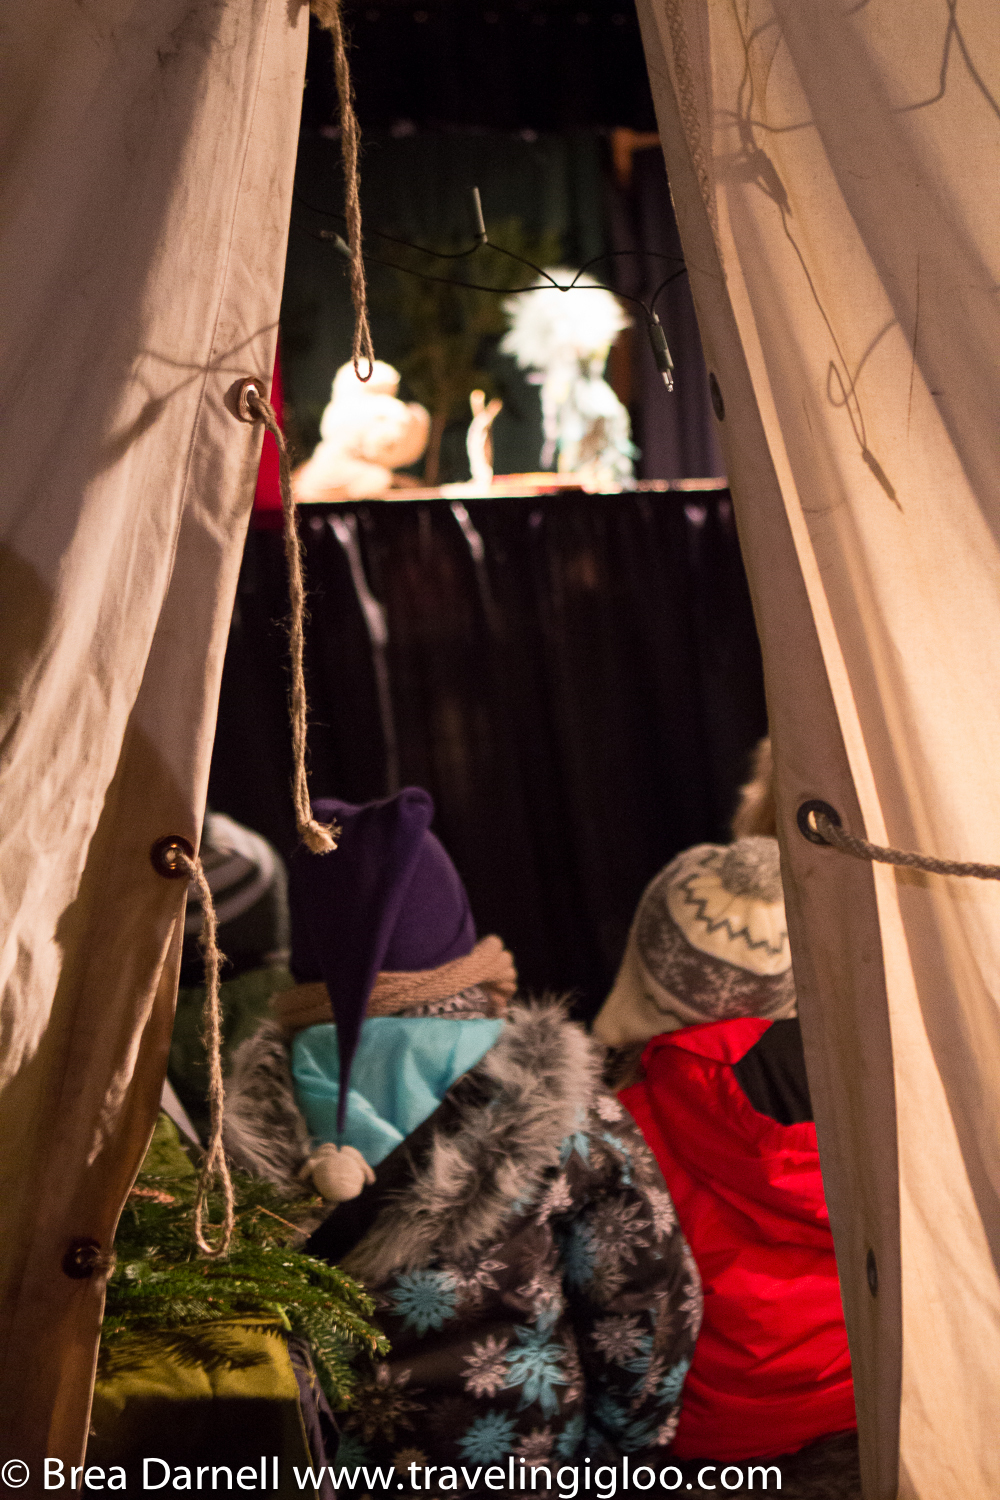 I love this image. Children were listening to Christmas stories inside the tent.